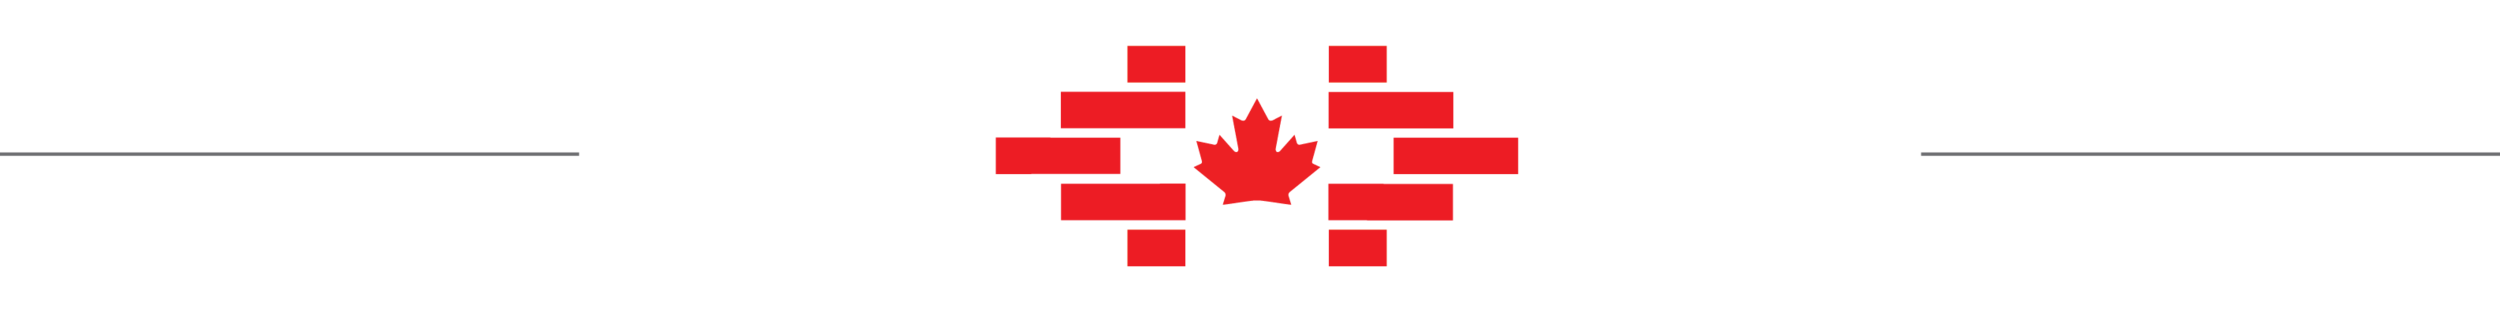 JAZBRICK_MADE IN CANADA Logo.png